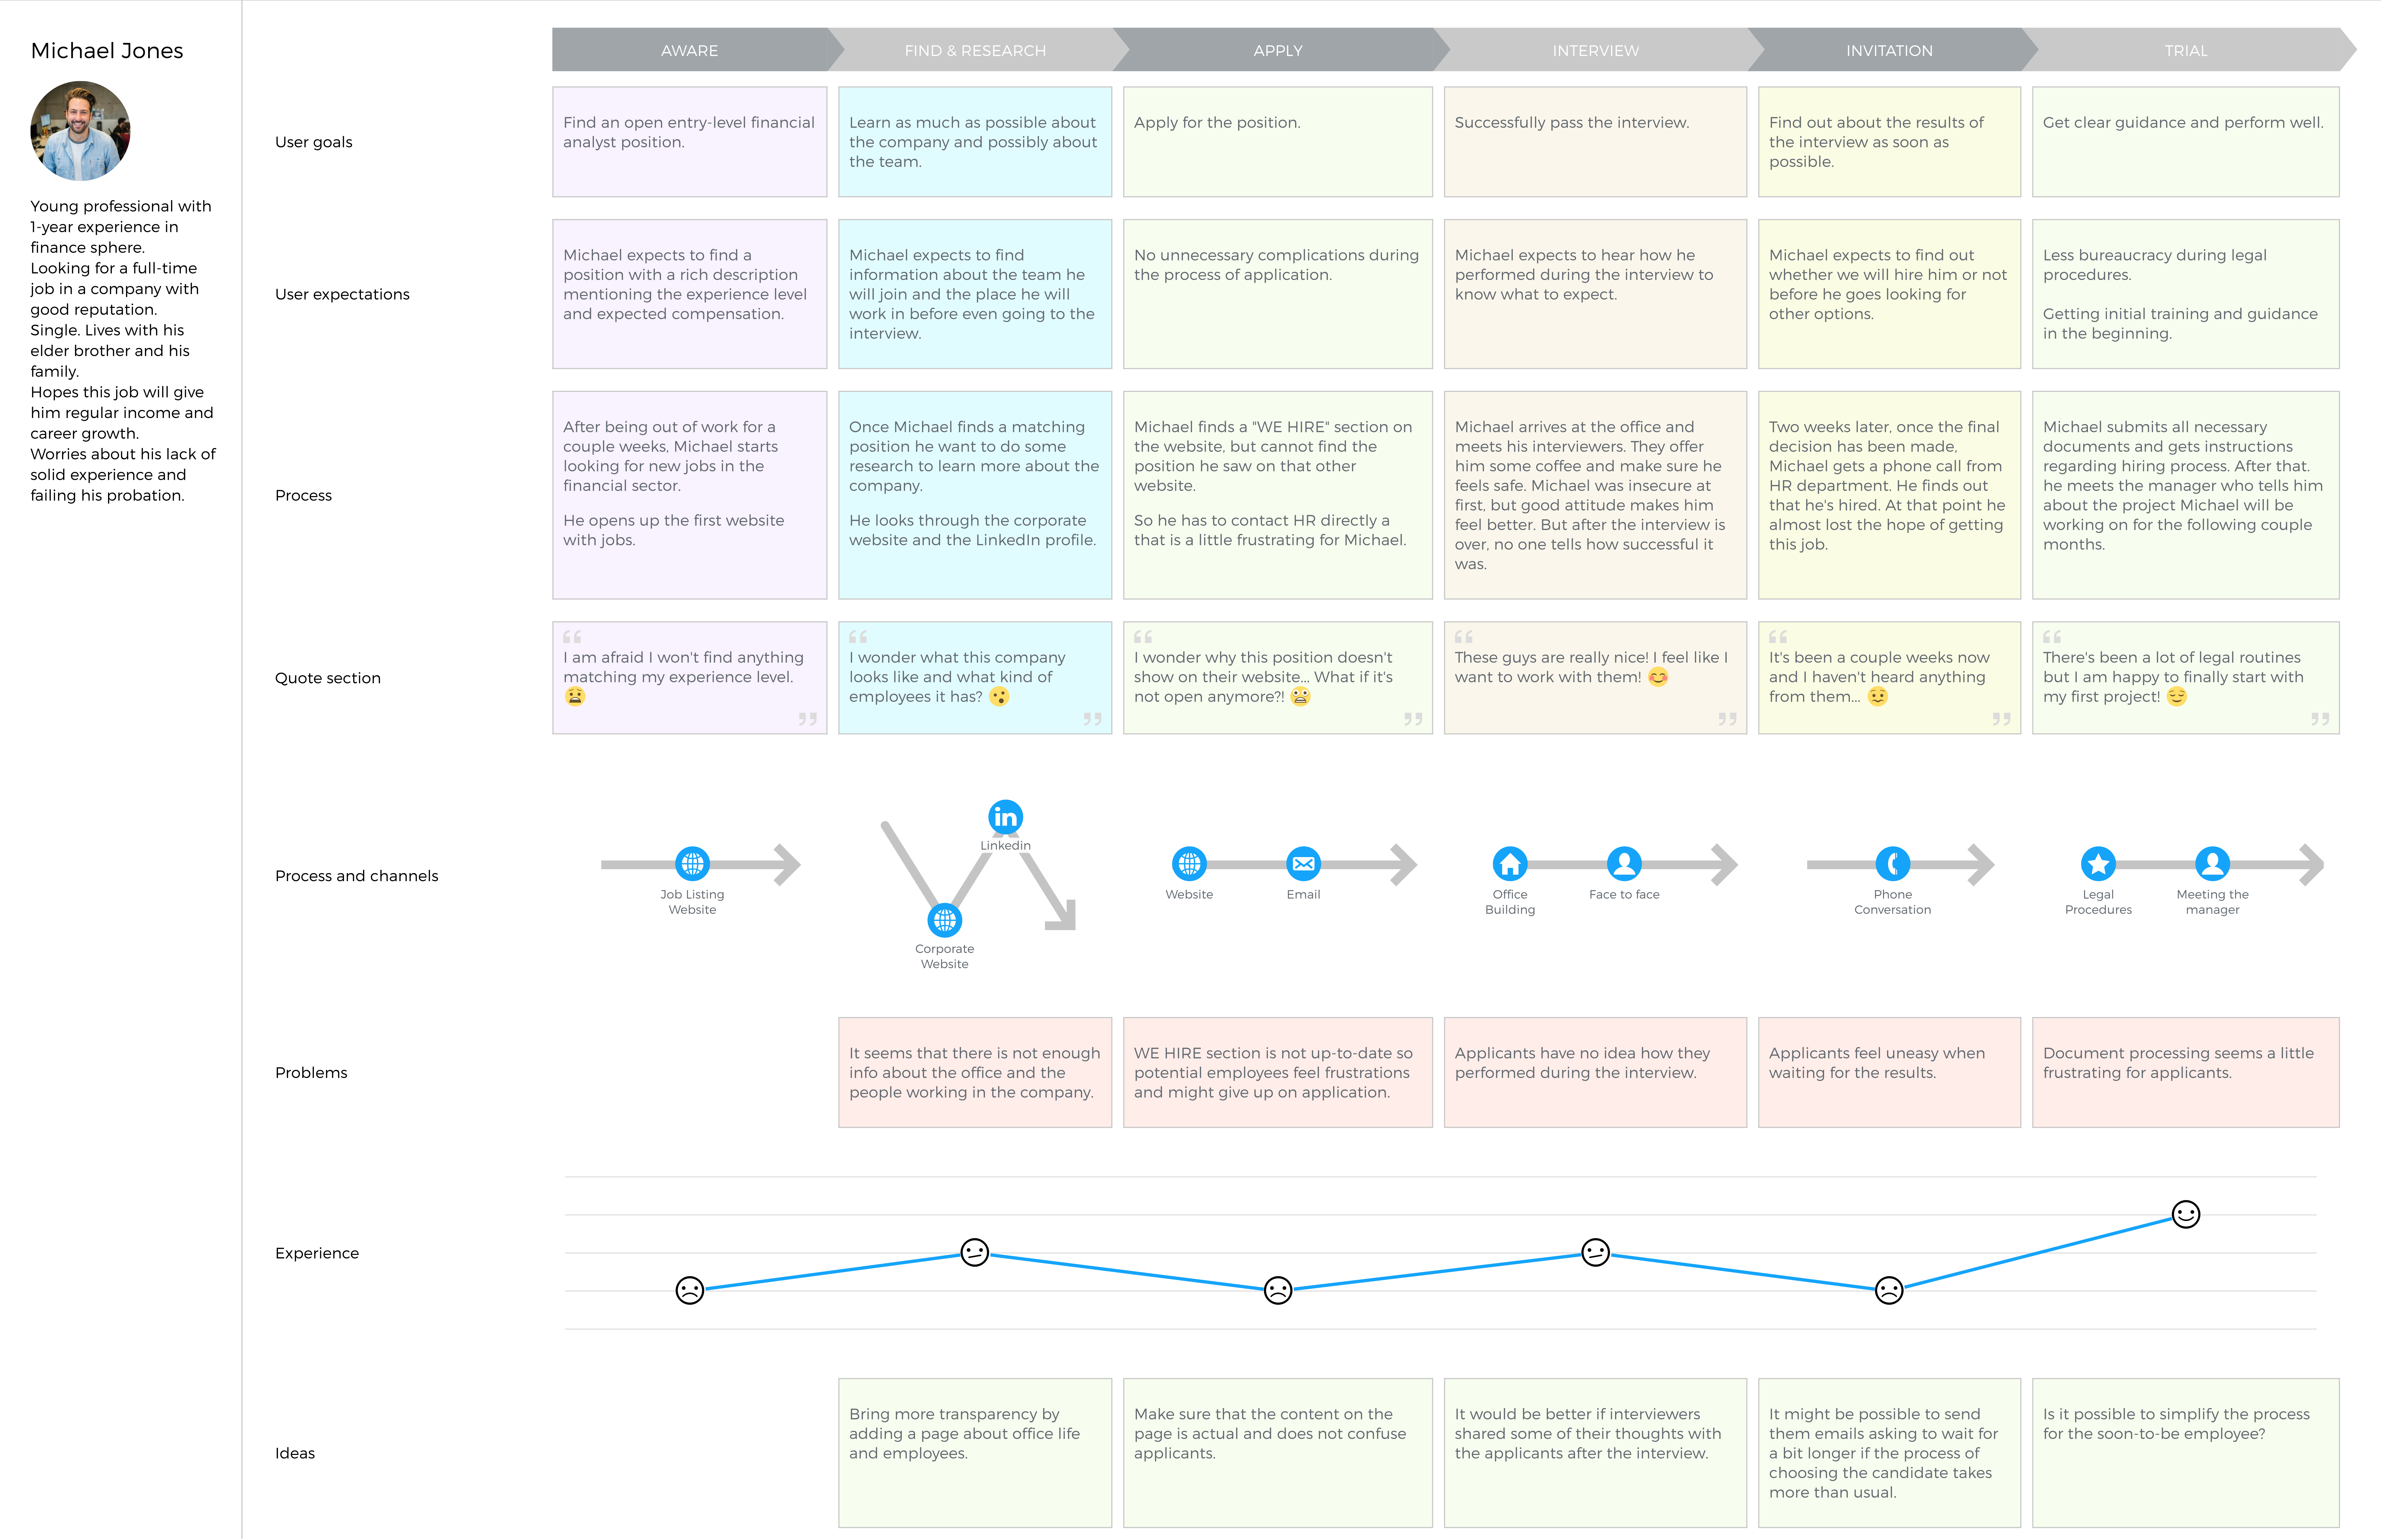 An Example Of An Employee Experience Journey Map Created In - Ux journey map template